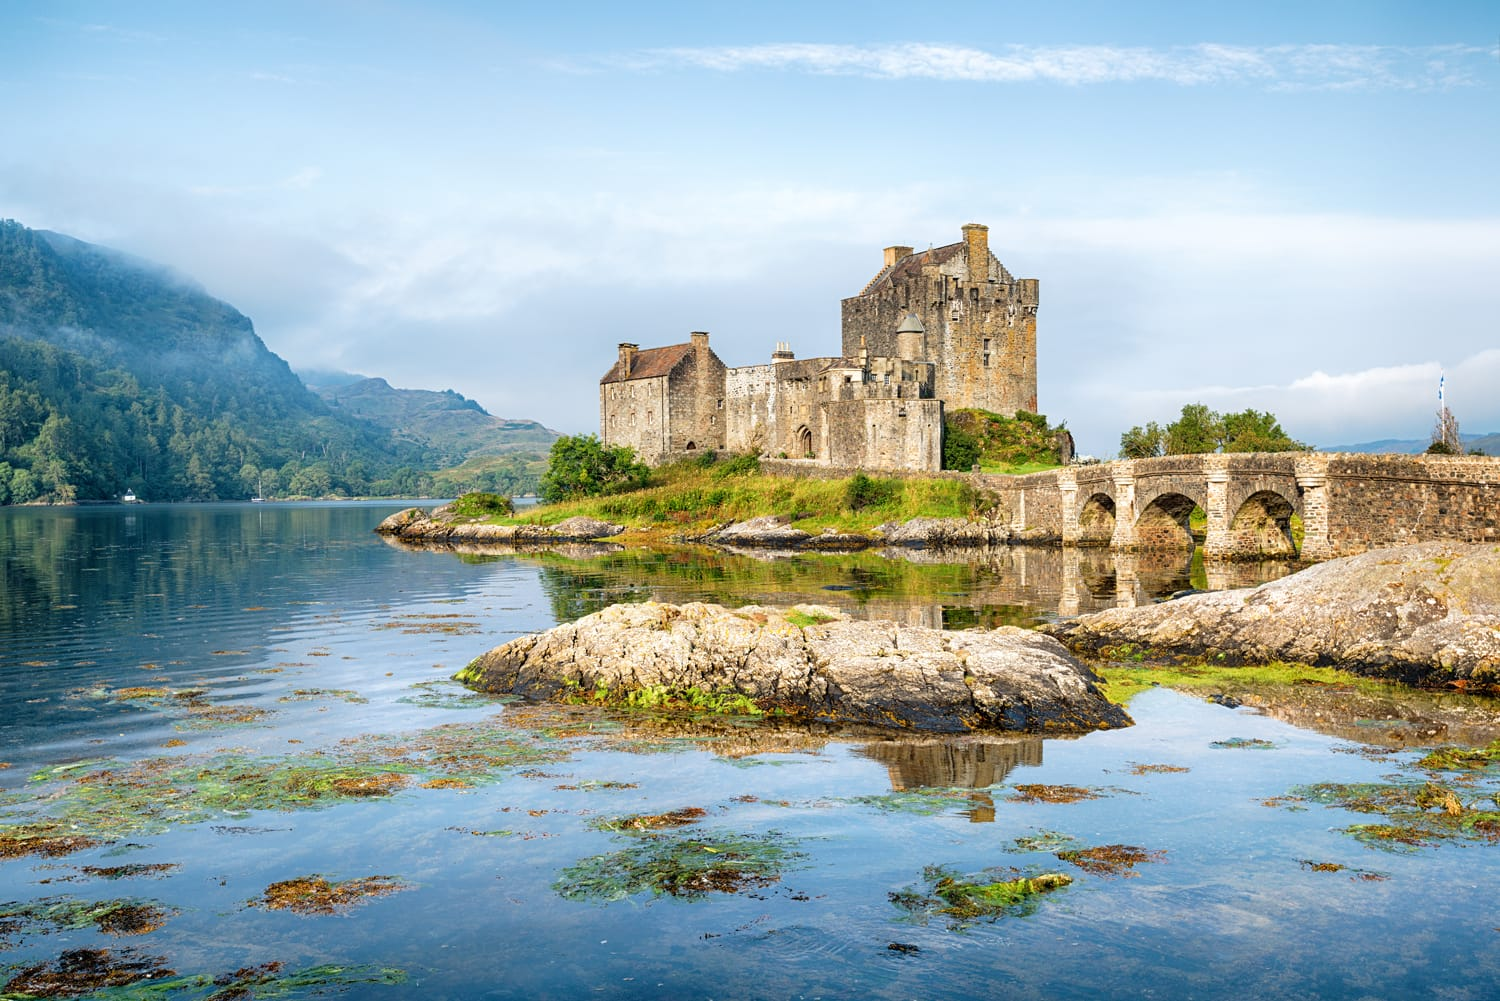 Early morning sunlight over Eilean Donan Castle at Kyle of Lochalsh in the Western Highlands of Scotland